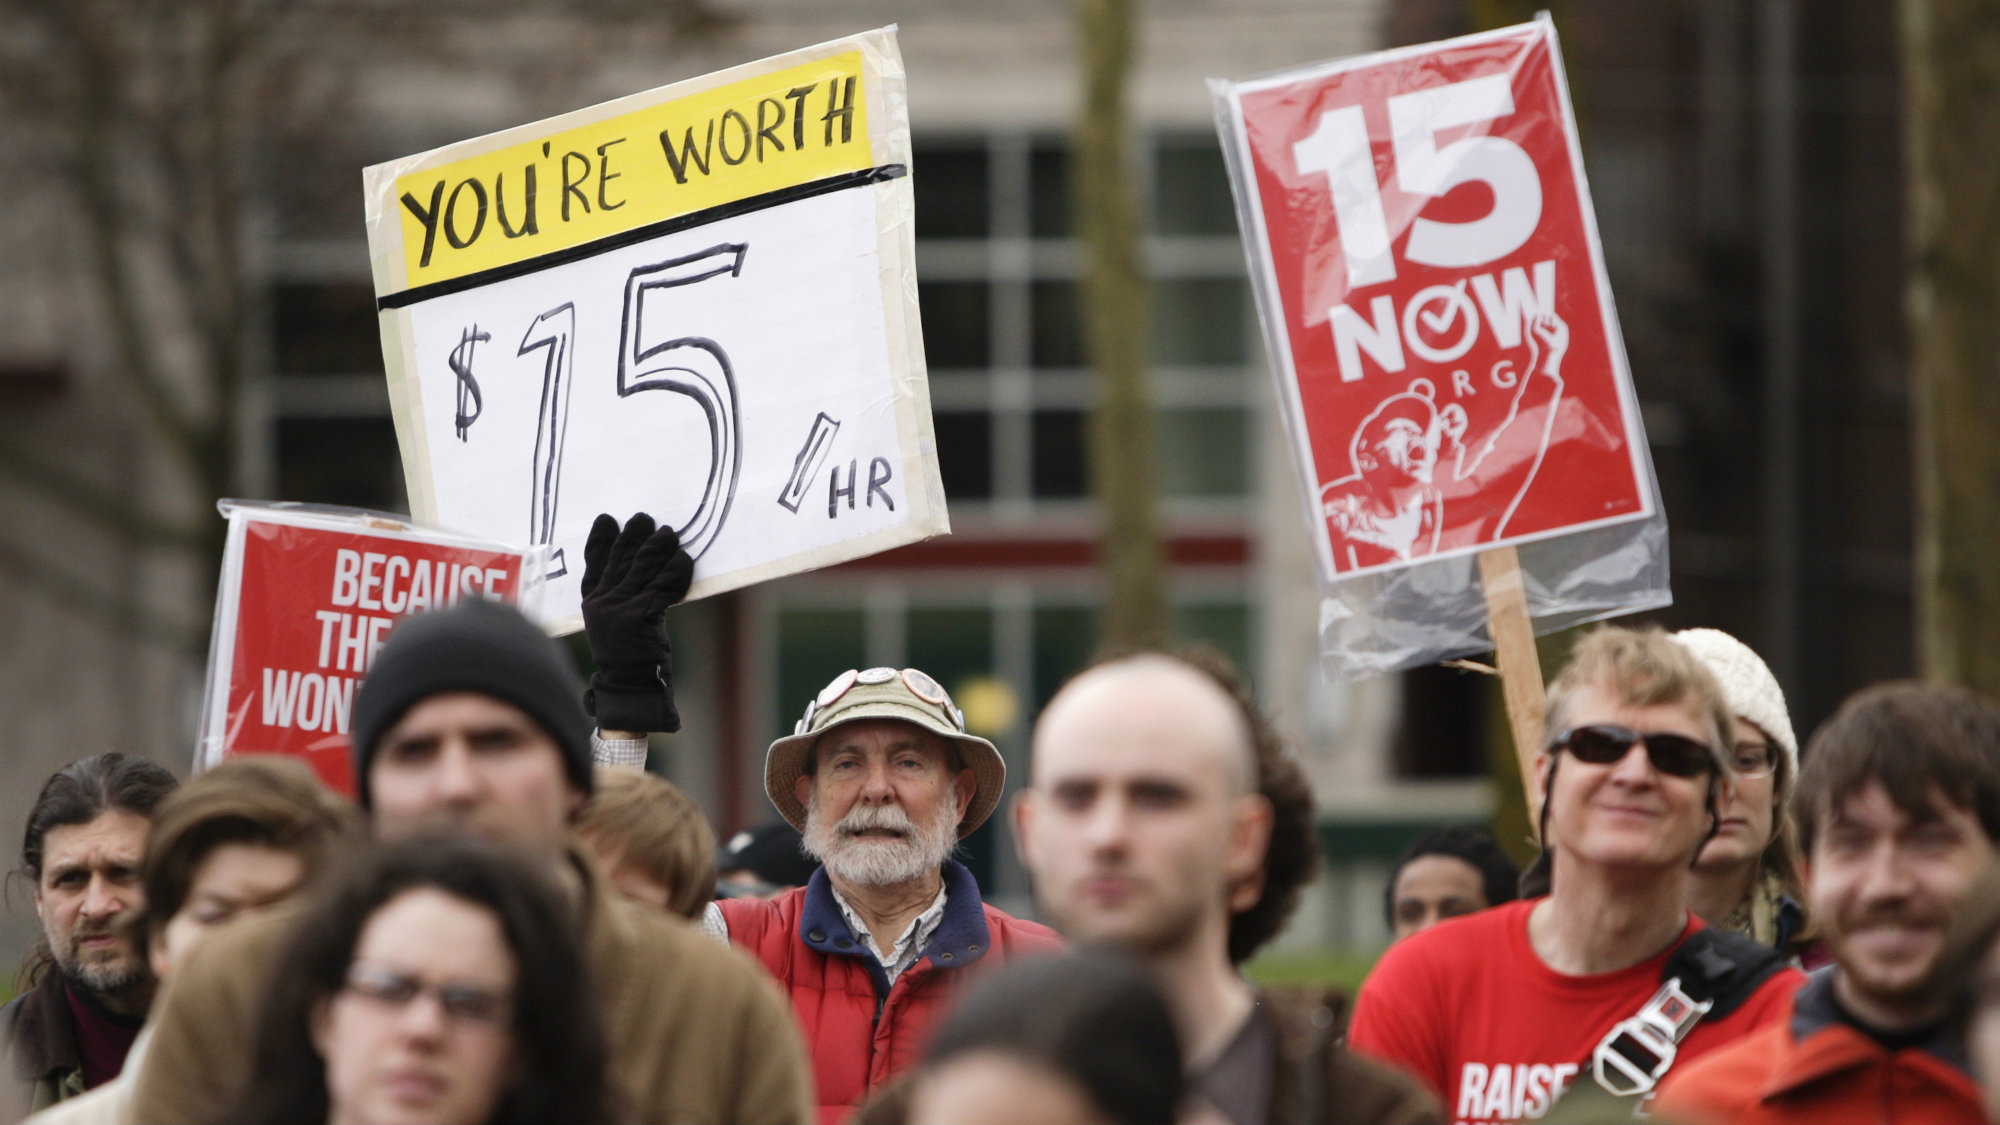 People rally in support of a $15 minimum wage at Seattle Central Community College in Seattle, Washington.